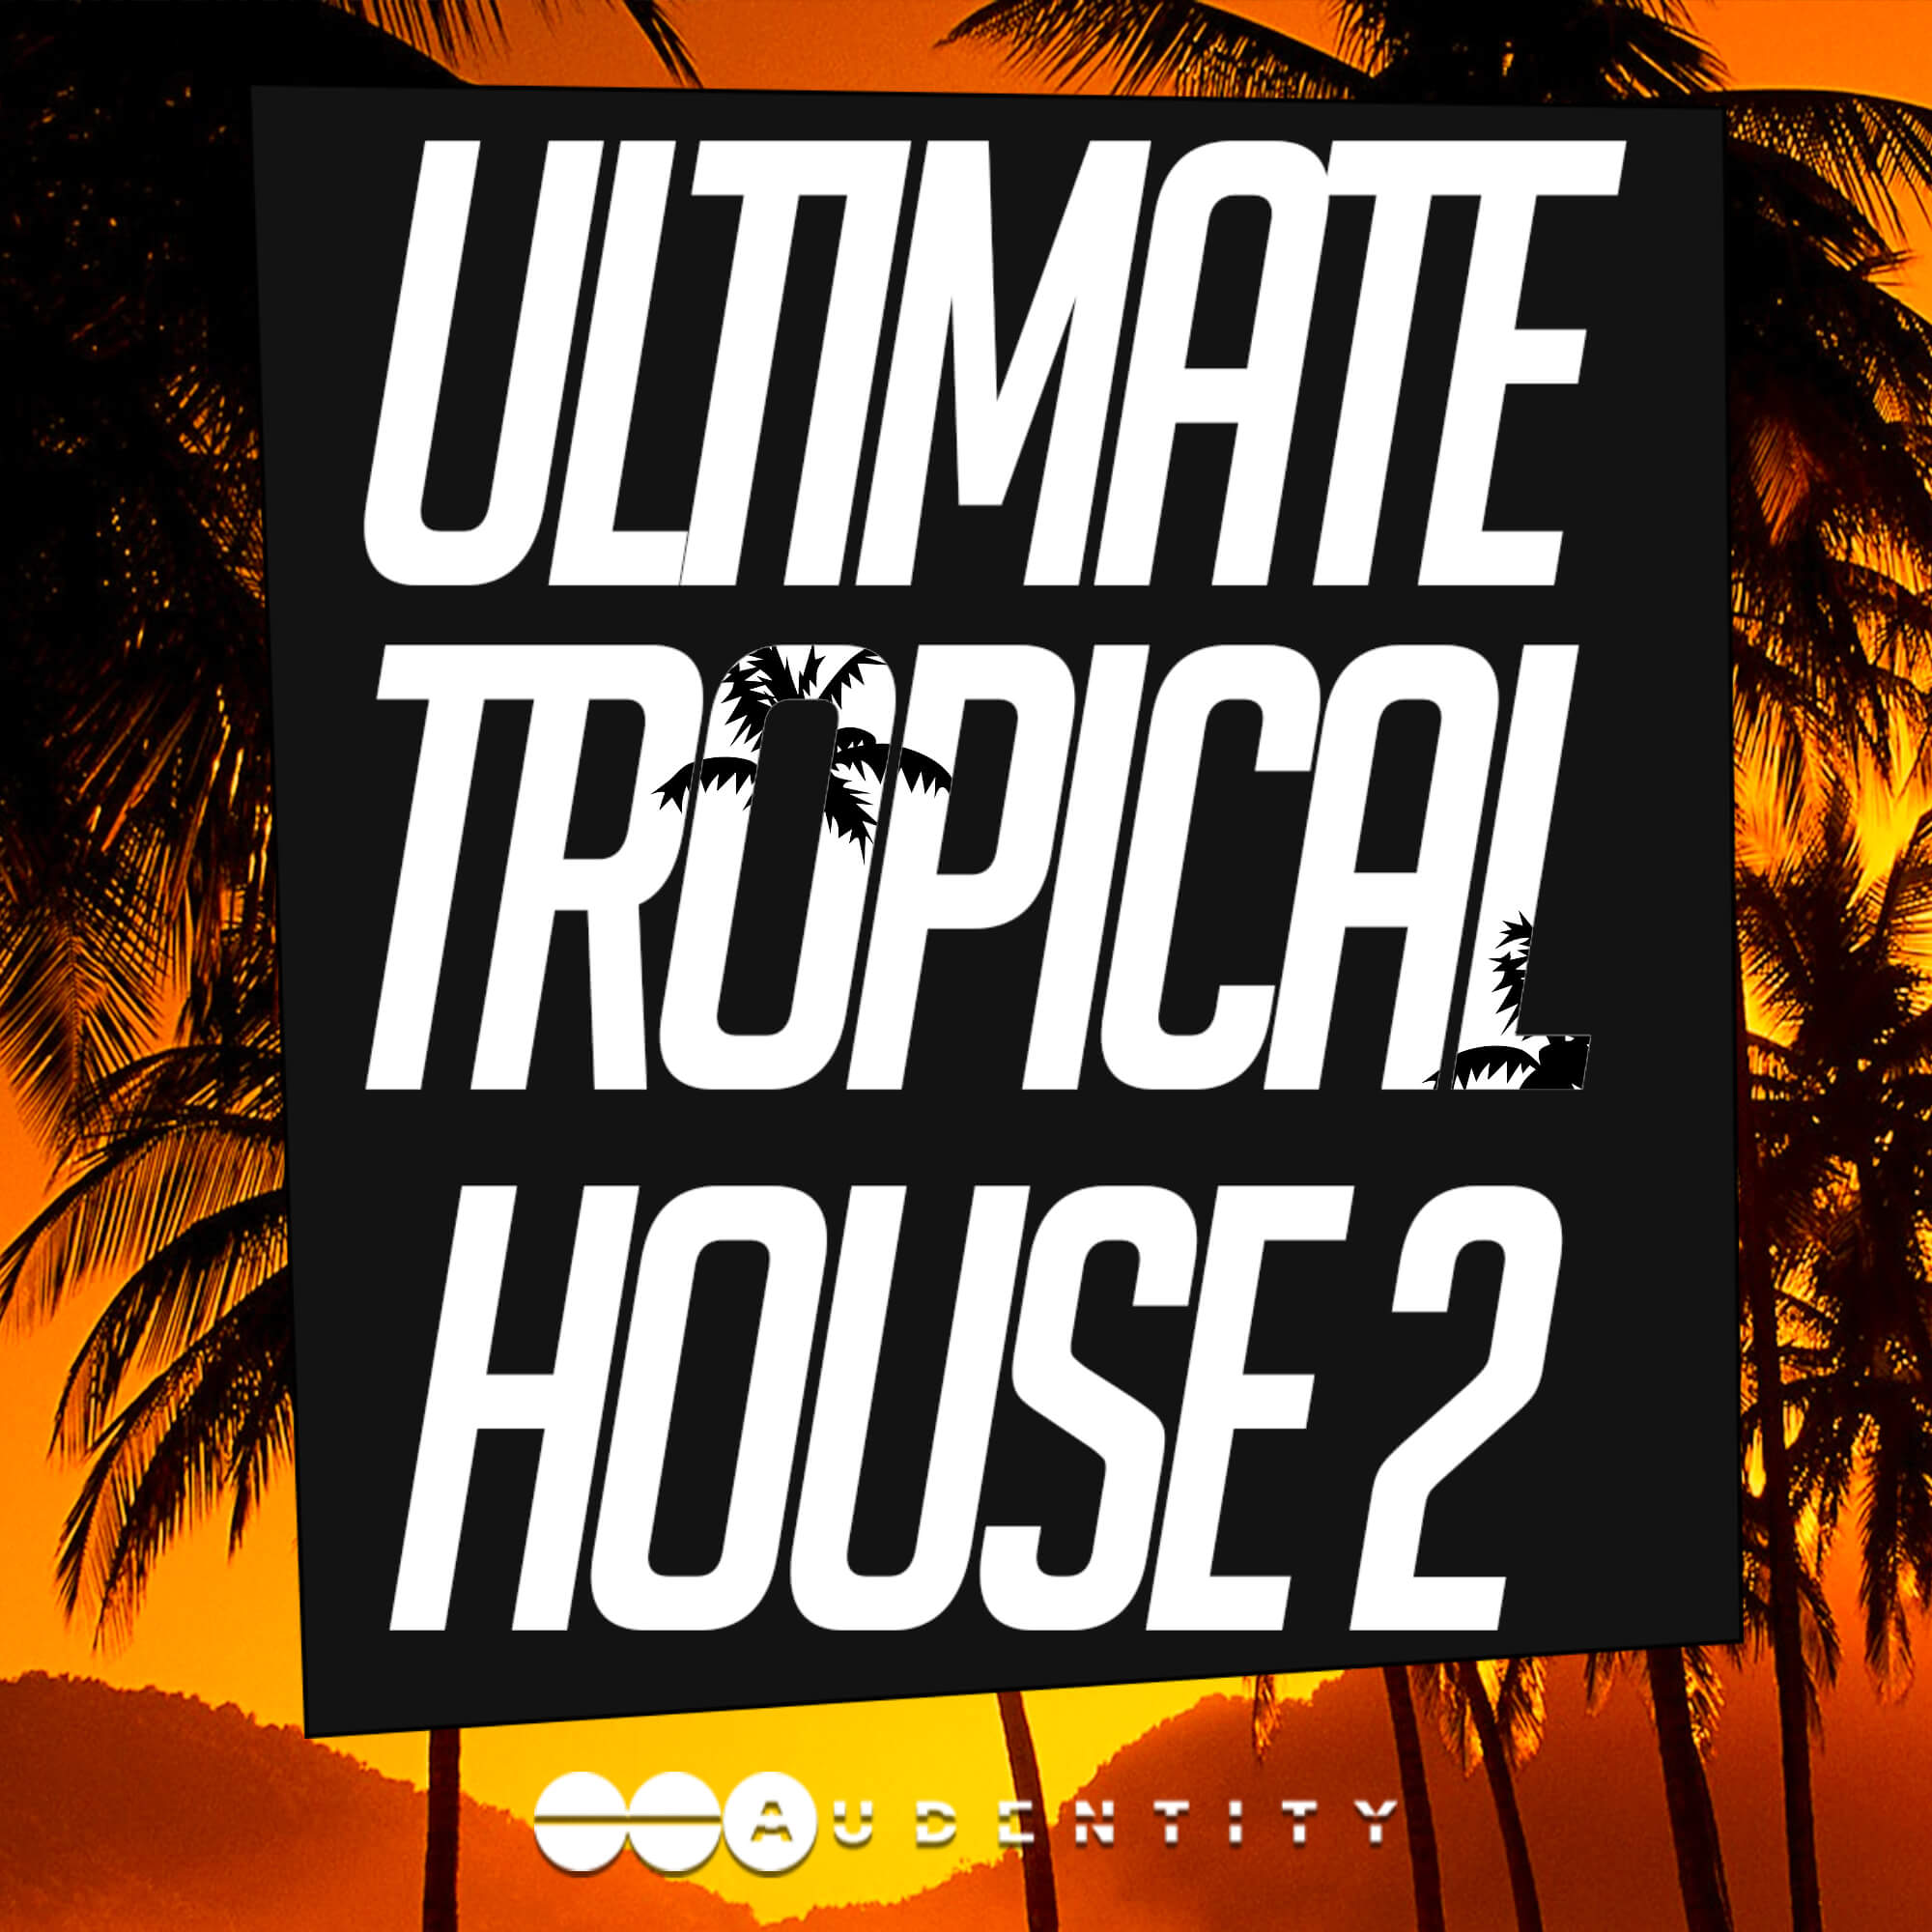 Ultimate Tropical House 2